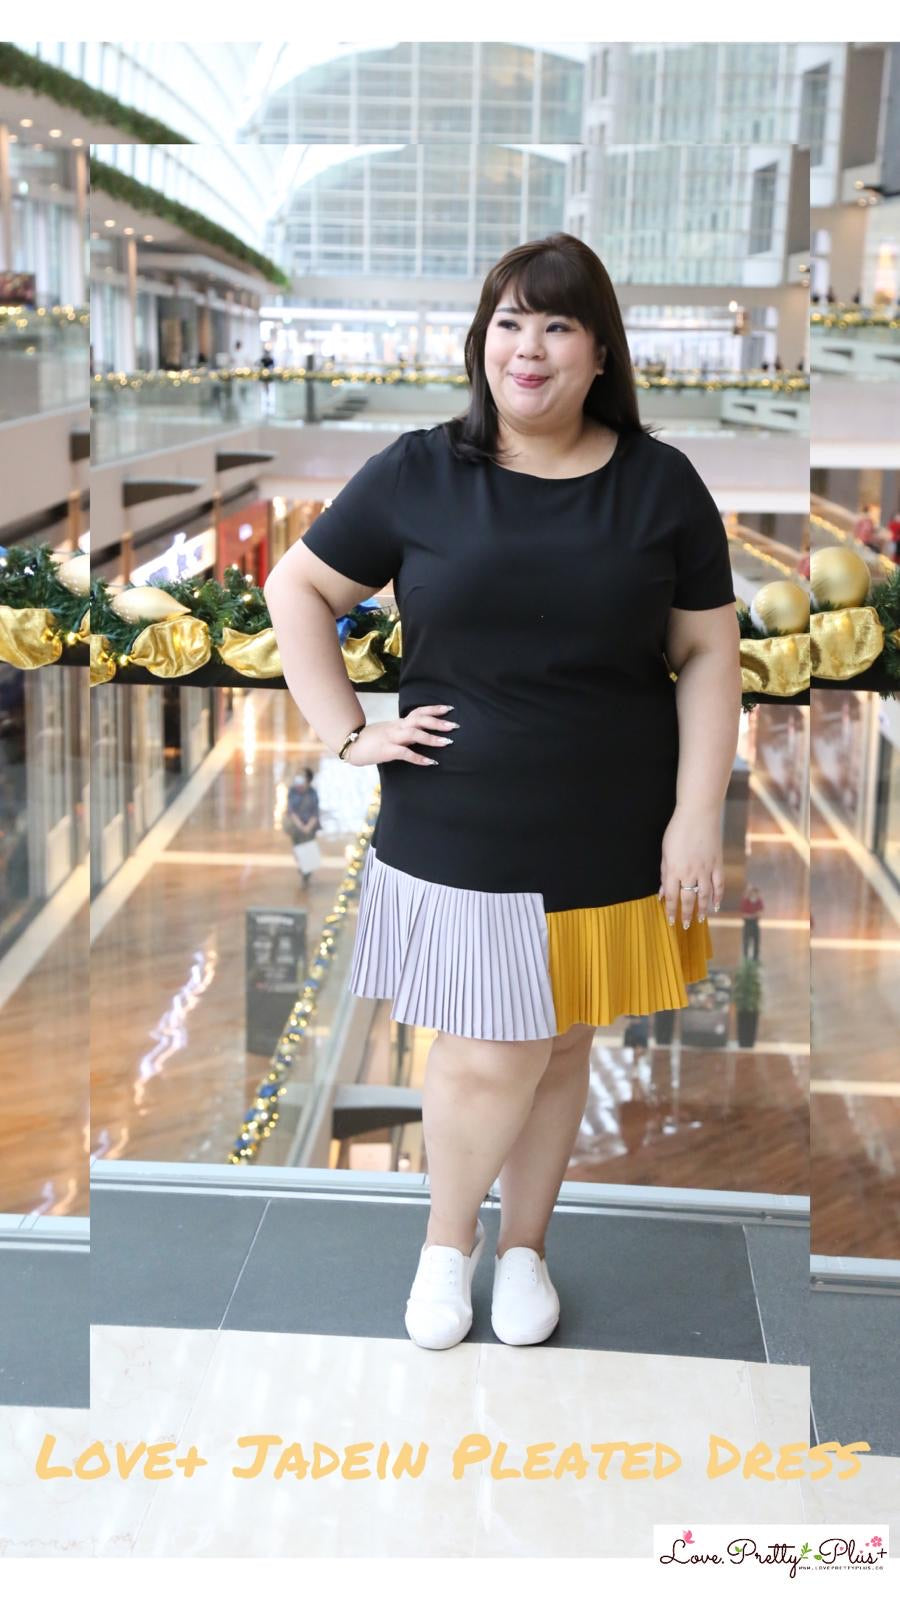 Love+ Jadein Pleated Dress (Plus Size Dress)